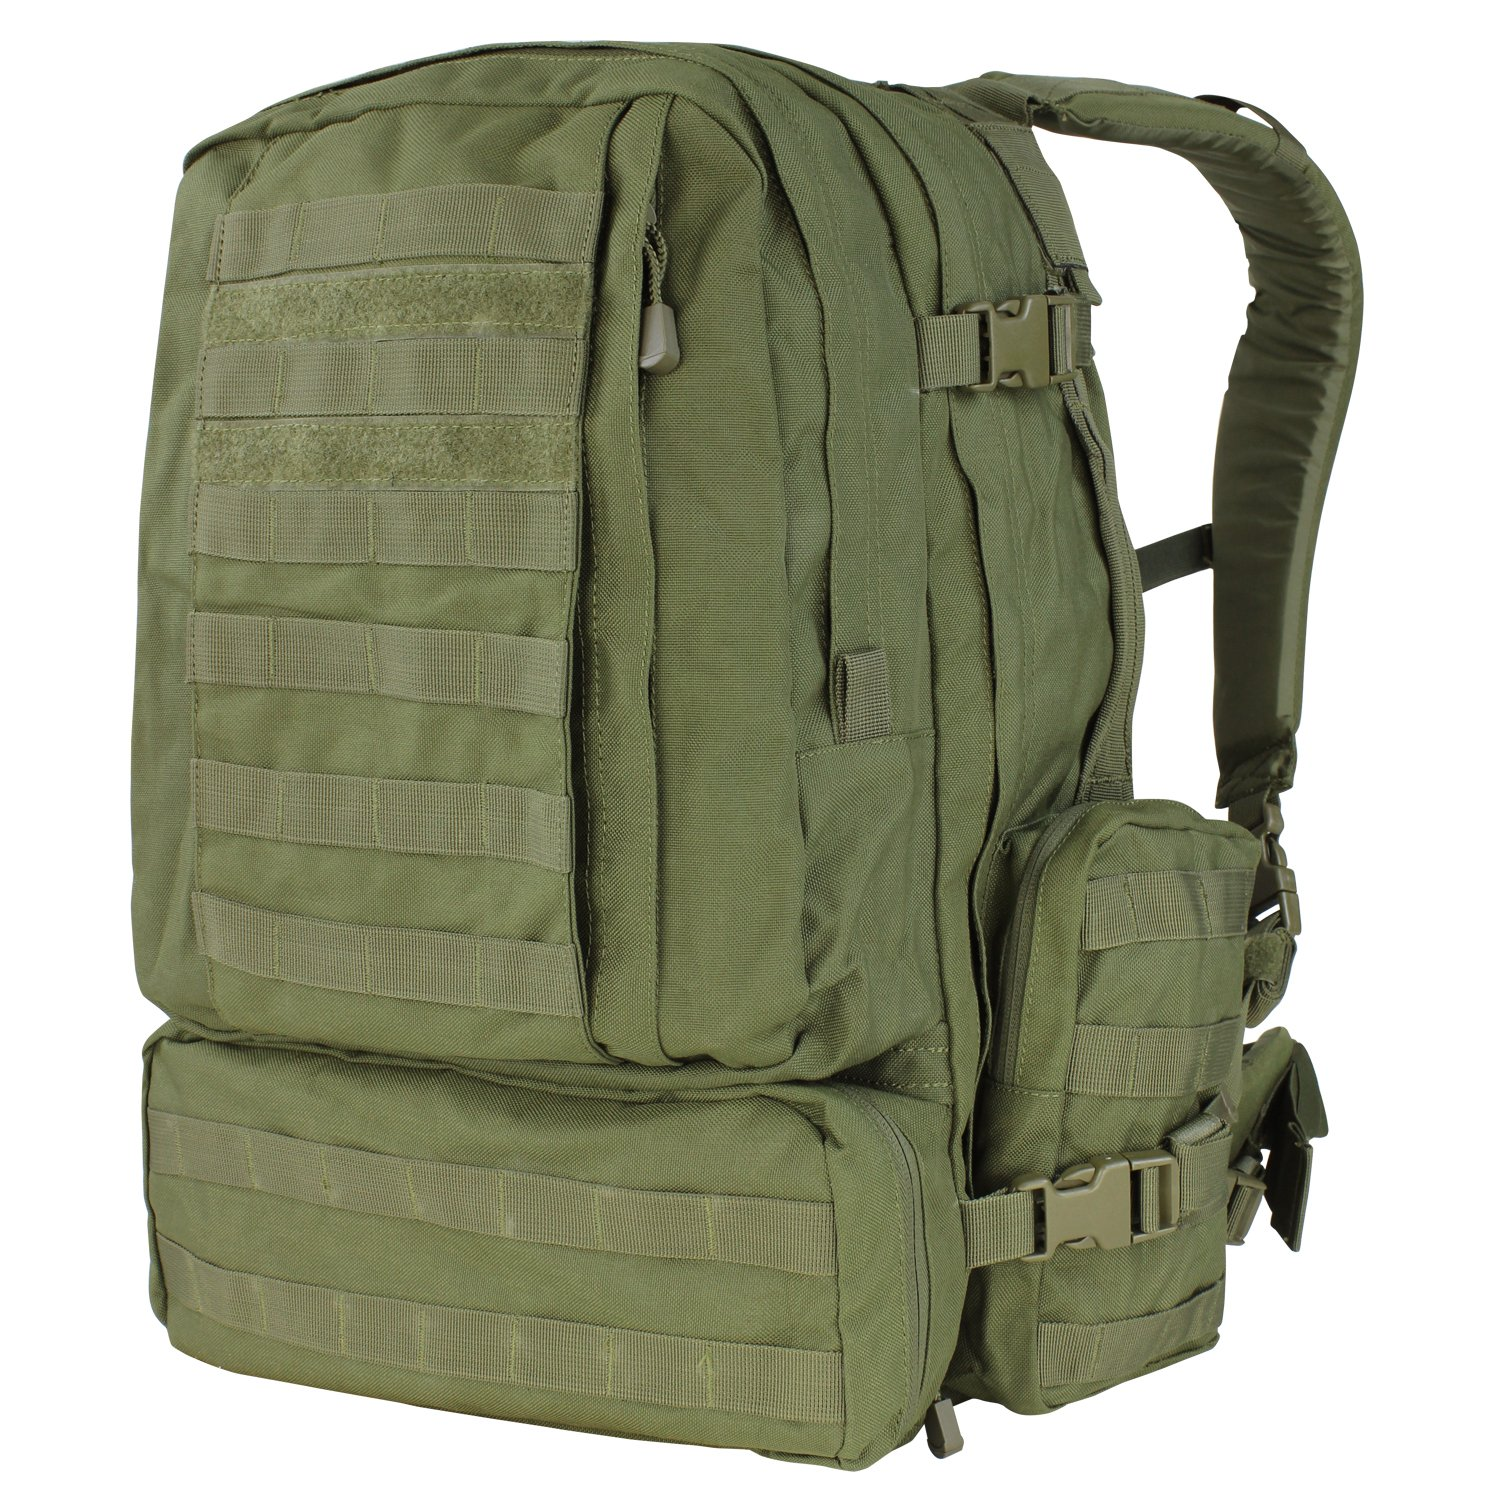 0563c0dee670 Condor 3 Day Assault Pack Review